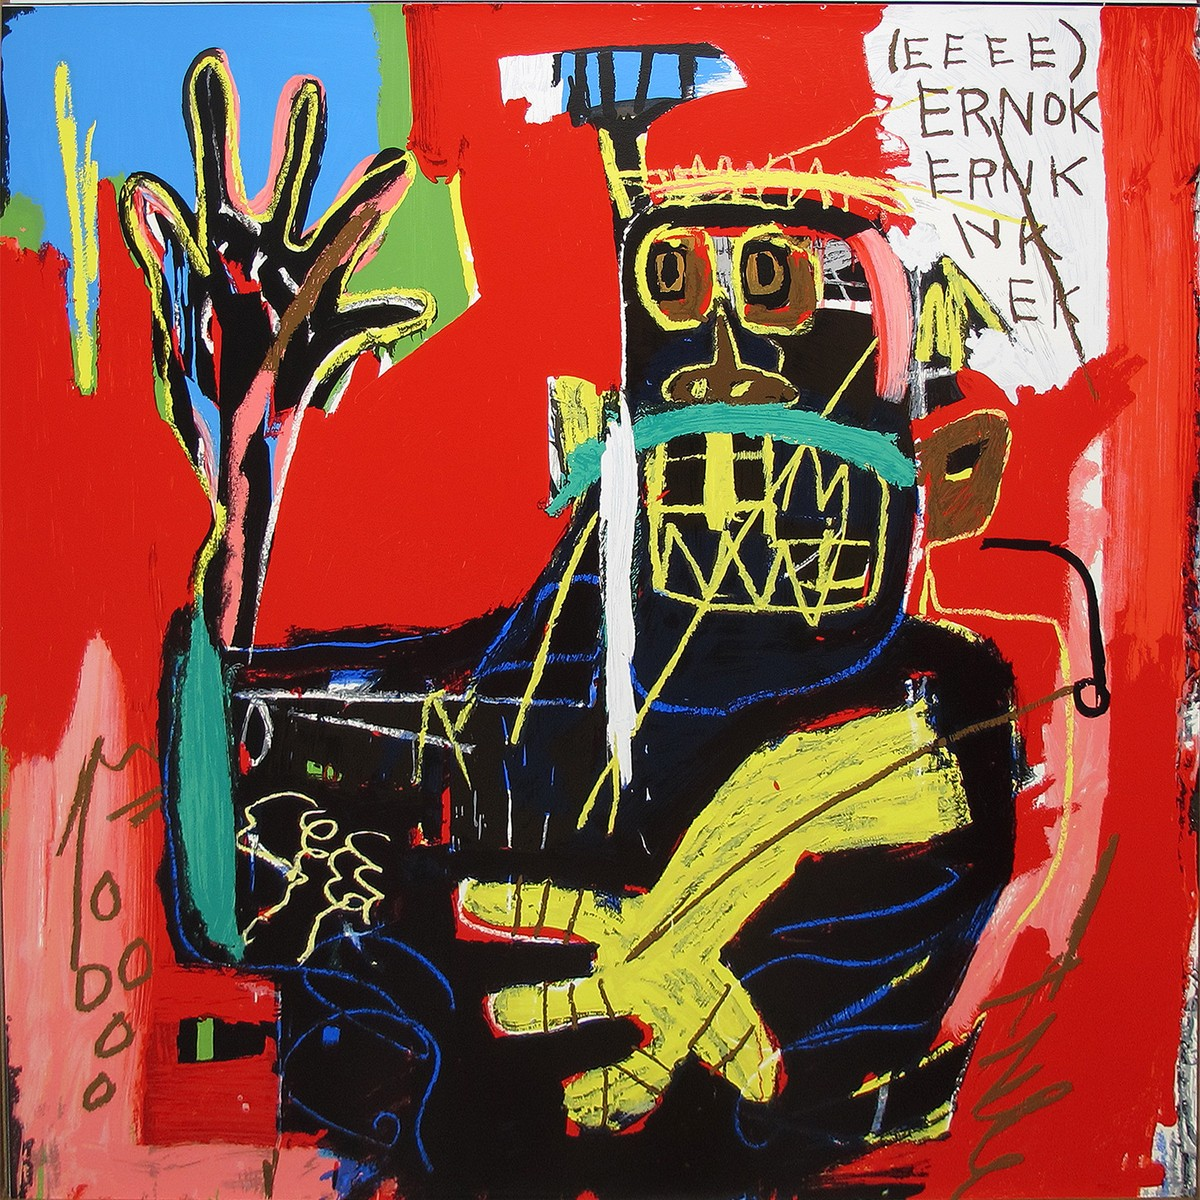 Jean-Michel Basquiat | Ernok | 1982-2001 | Image of Artists' work.